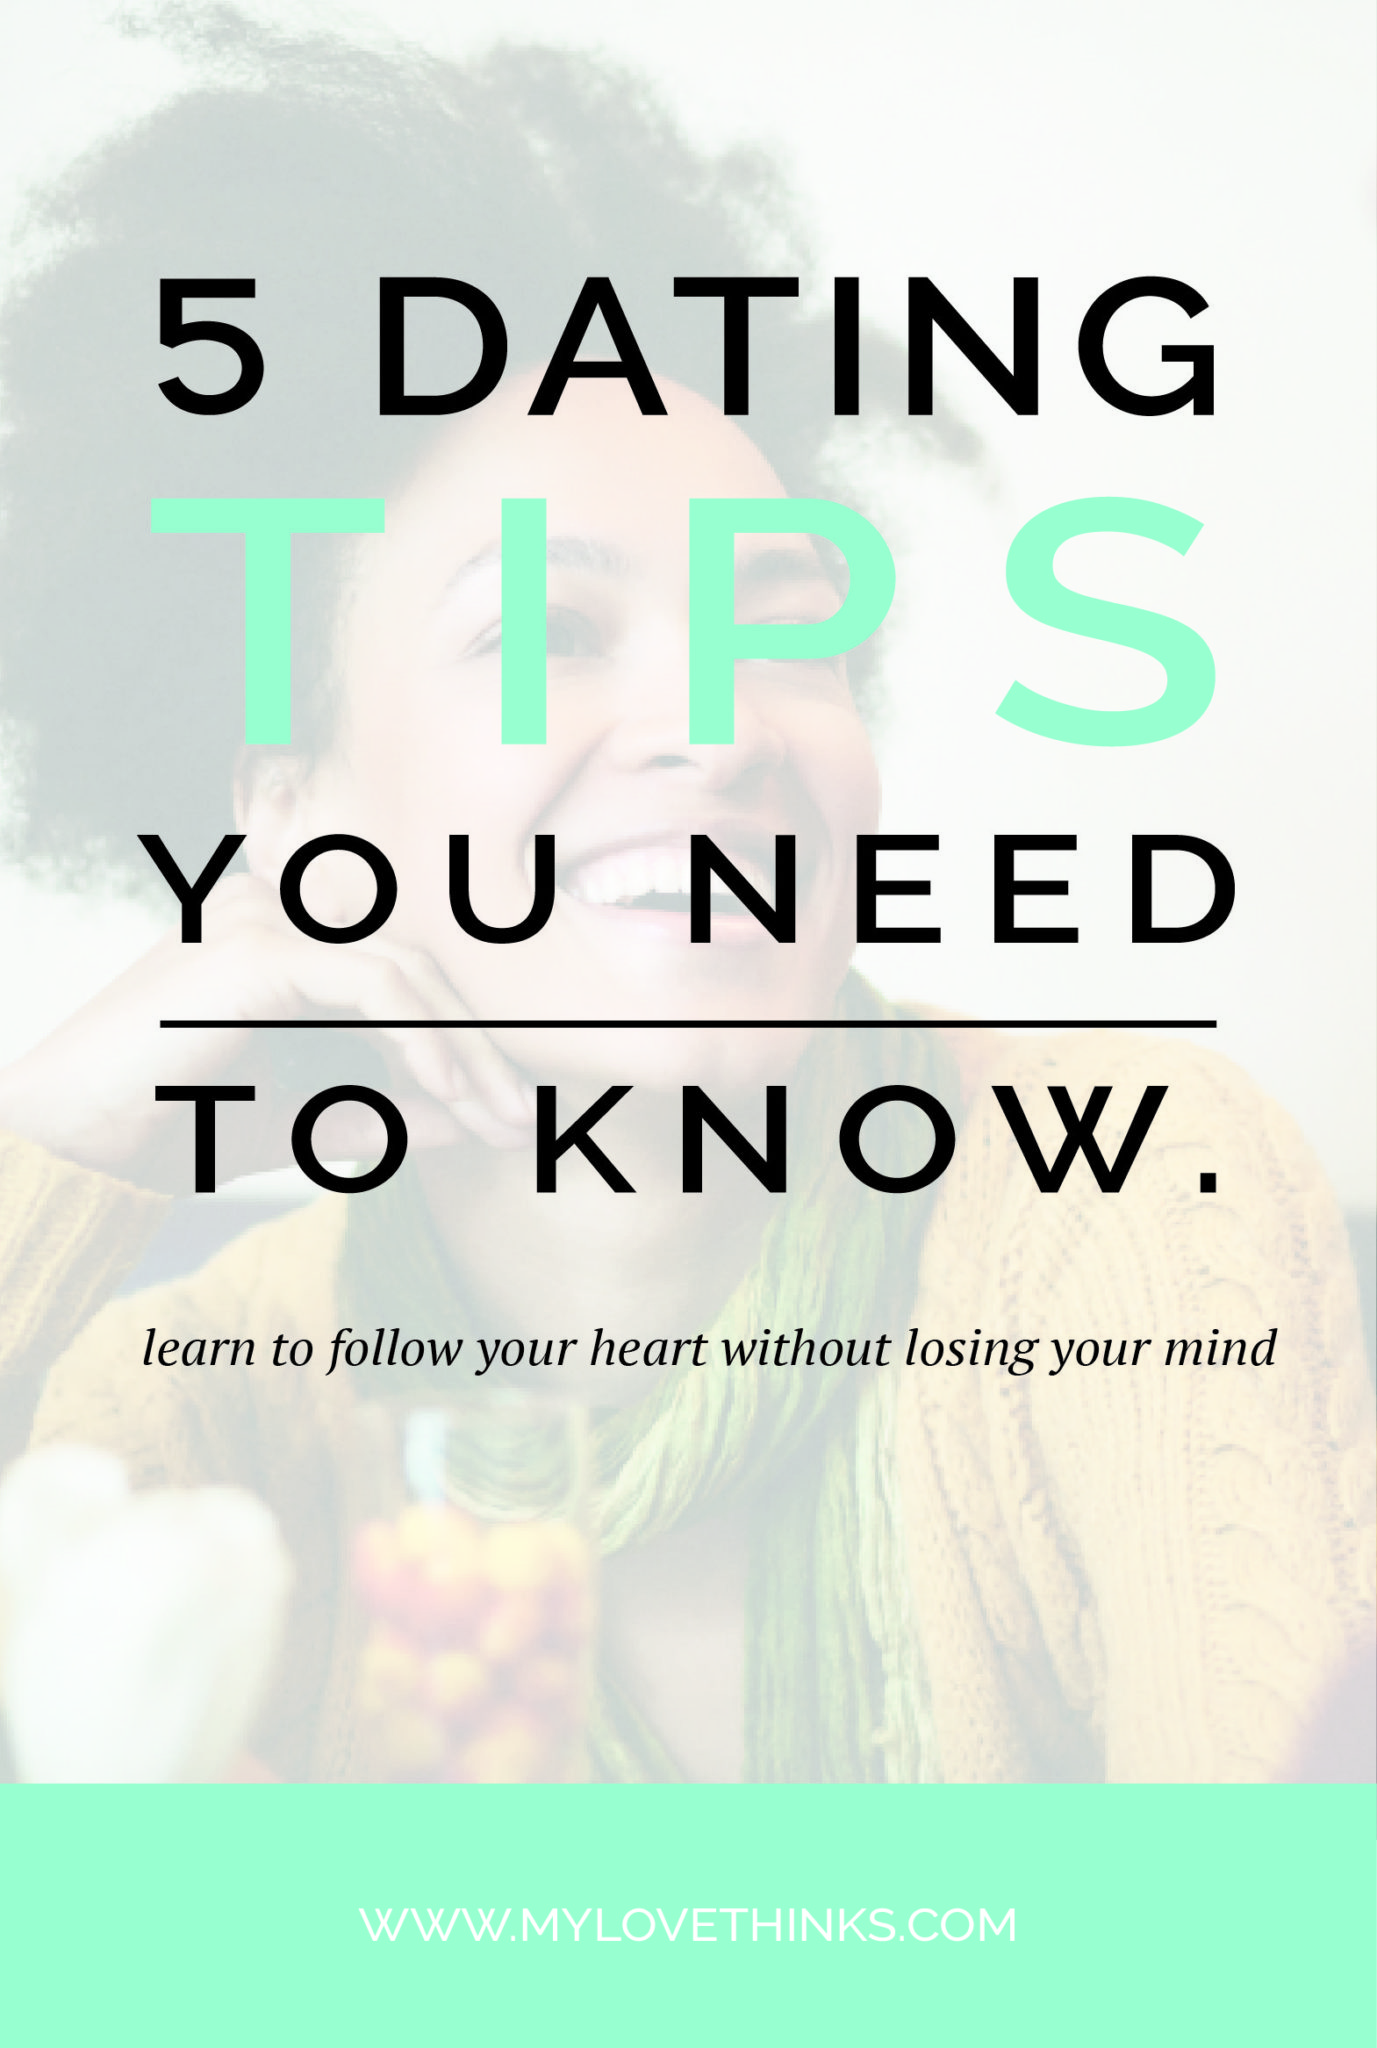 5 dating tips